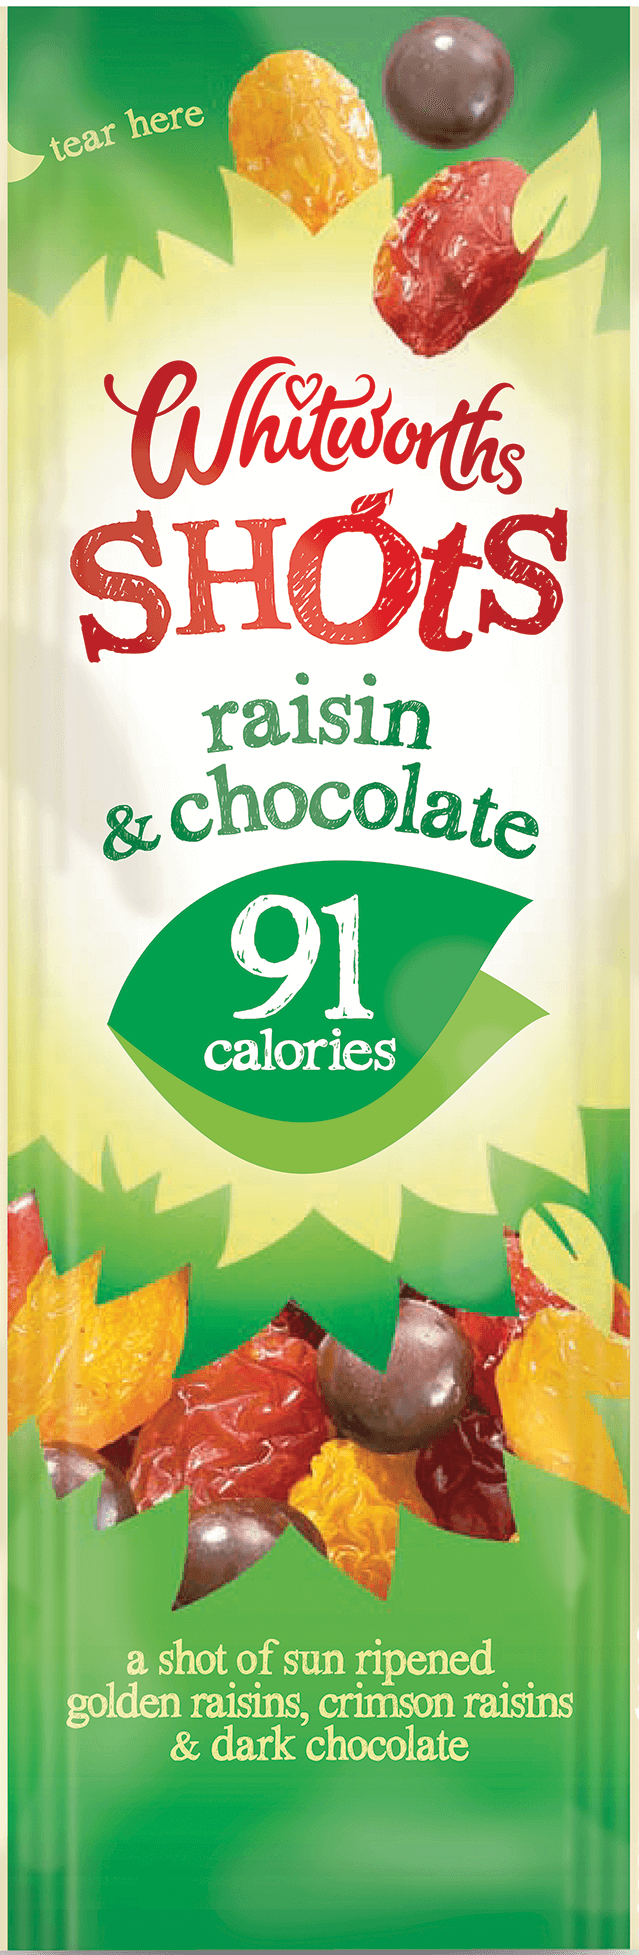 Whitworths Shots - Raisin & Chocolate (91 calories)